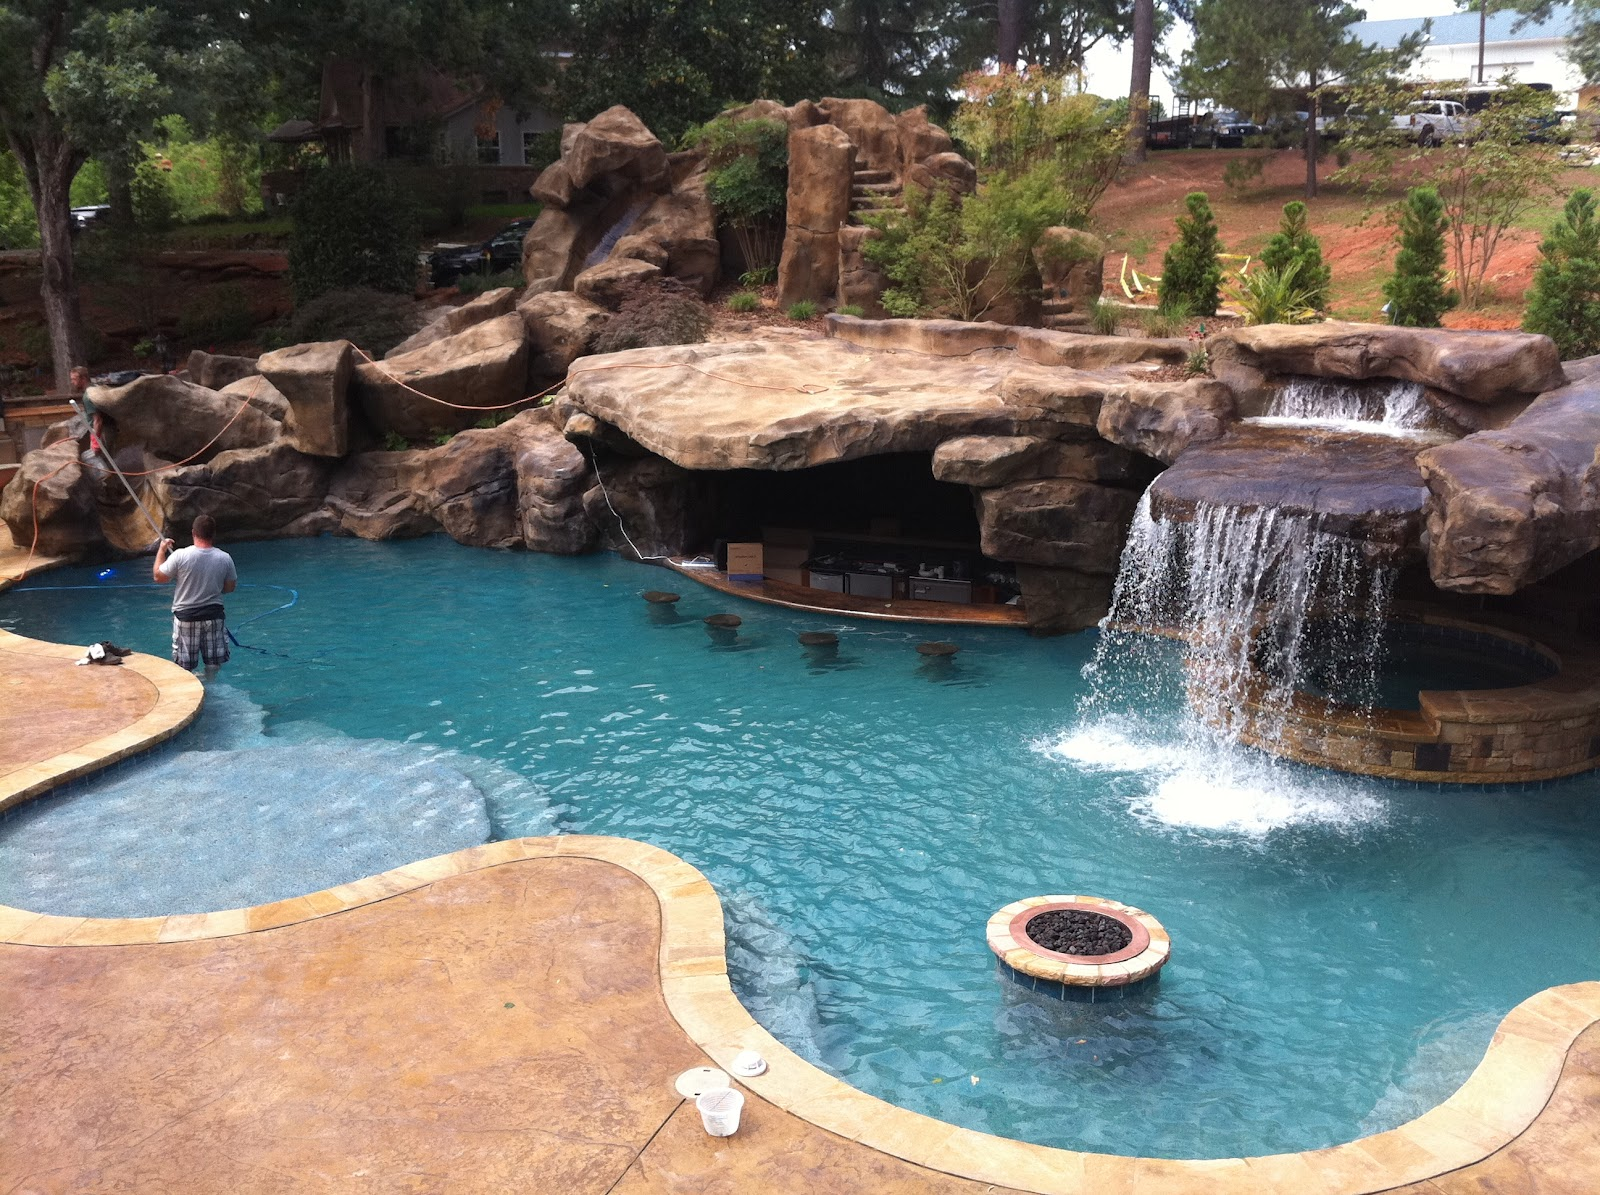 Backyard Oasis Pools: Custom Pool & Faux Rock Grotto & 40 ...